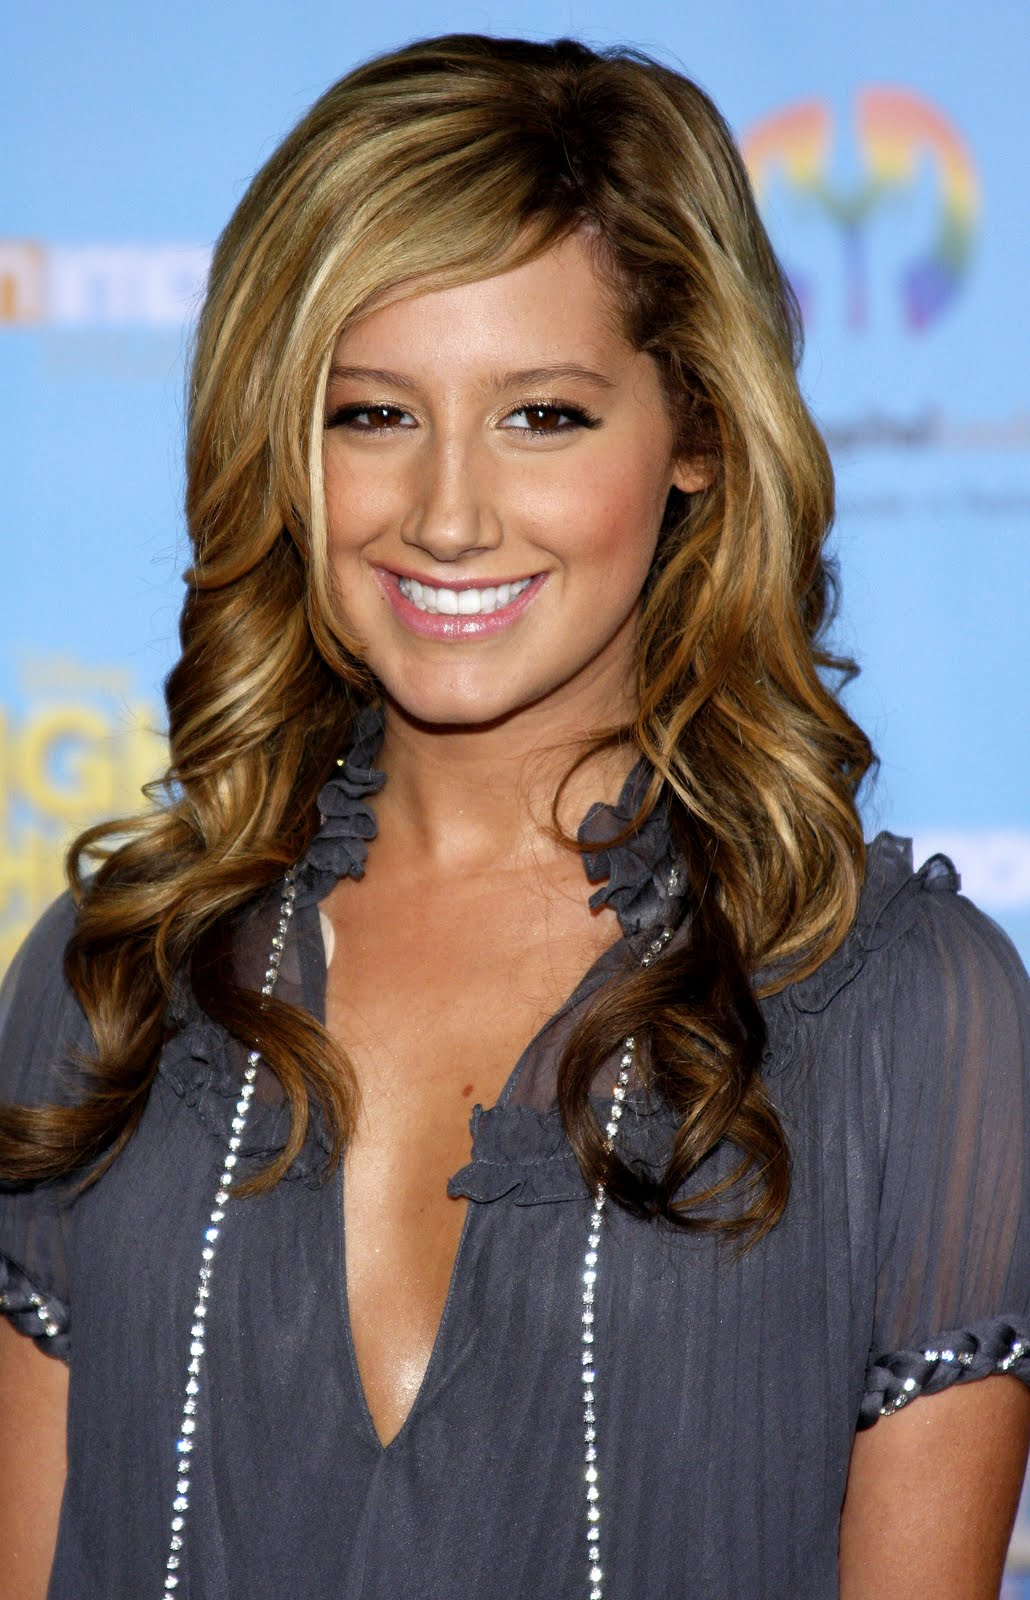 http://1.bp.blogspot.com/-KnxP5g4F3cA/UQQVW86UFlI/AAAAAAAAkQM/3zr8uUBghW4/s1600/Ashley-Tisdale-Ashleytisdale-hairstyles-pictures-videos-movies-actress-pics%252B%2525252817%25252529.jpg